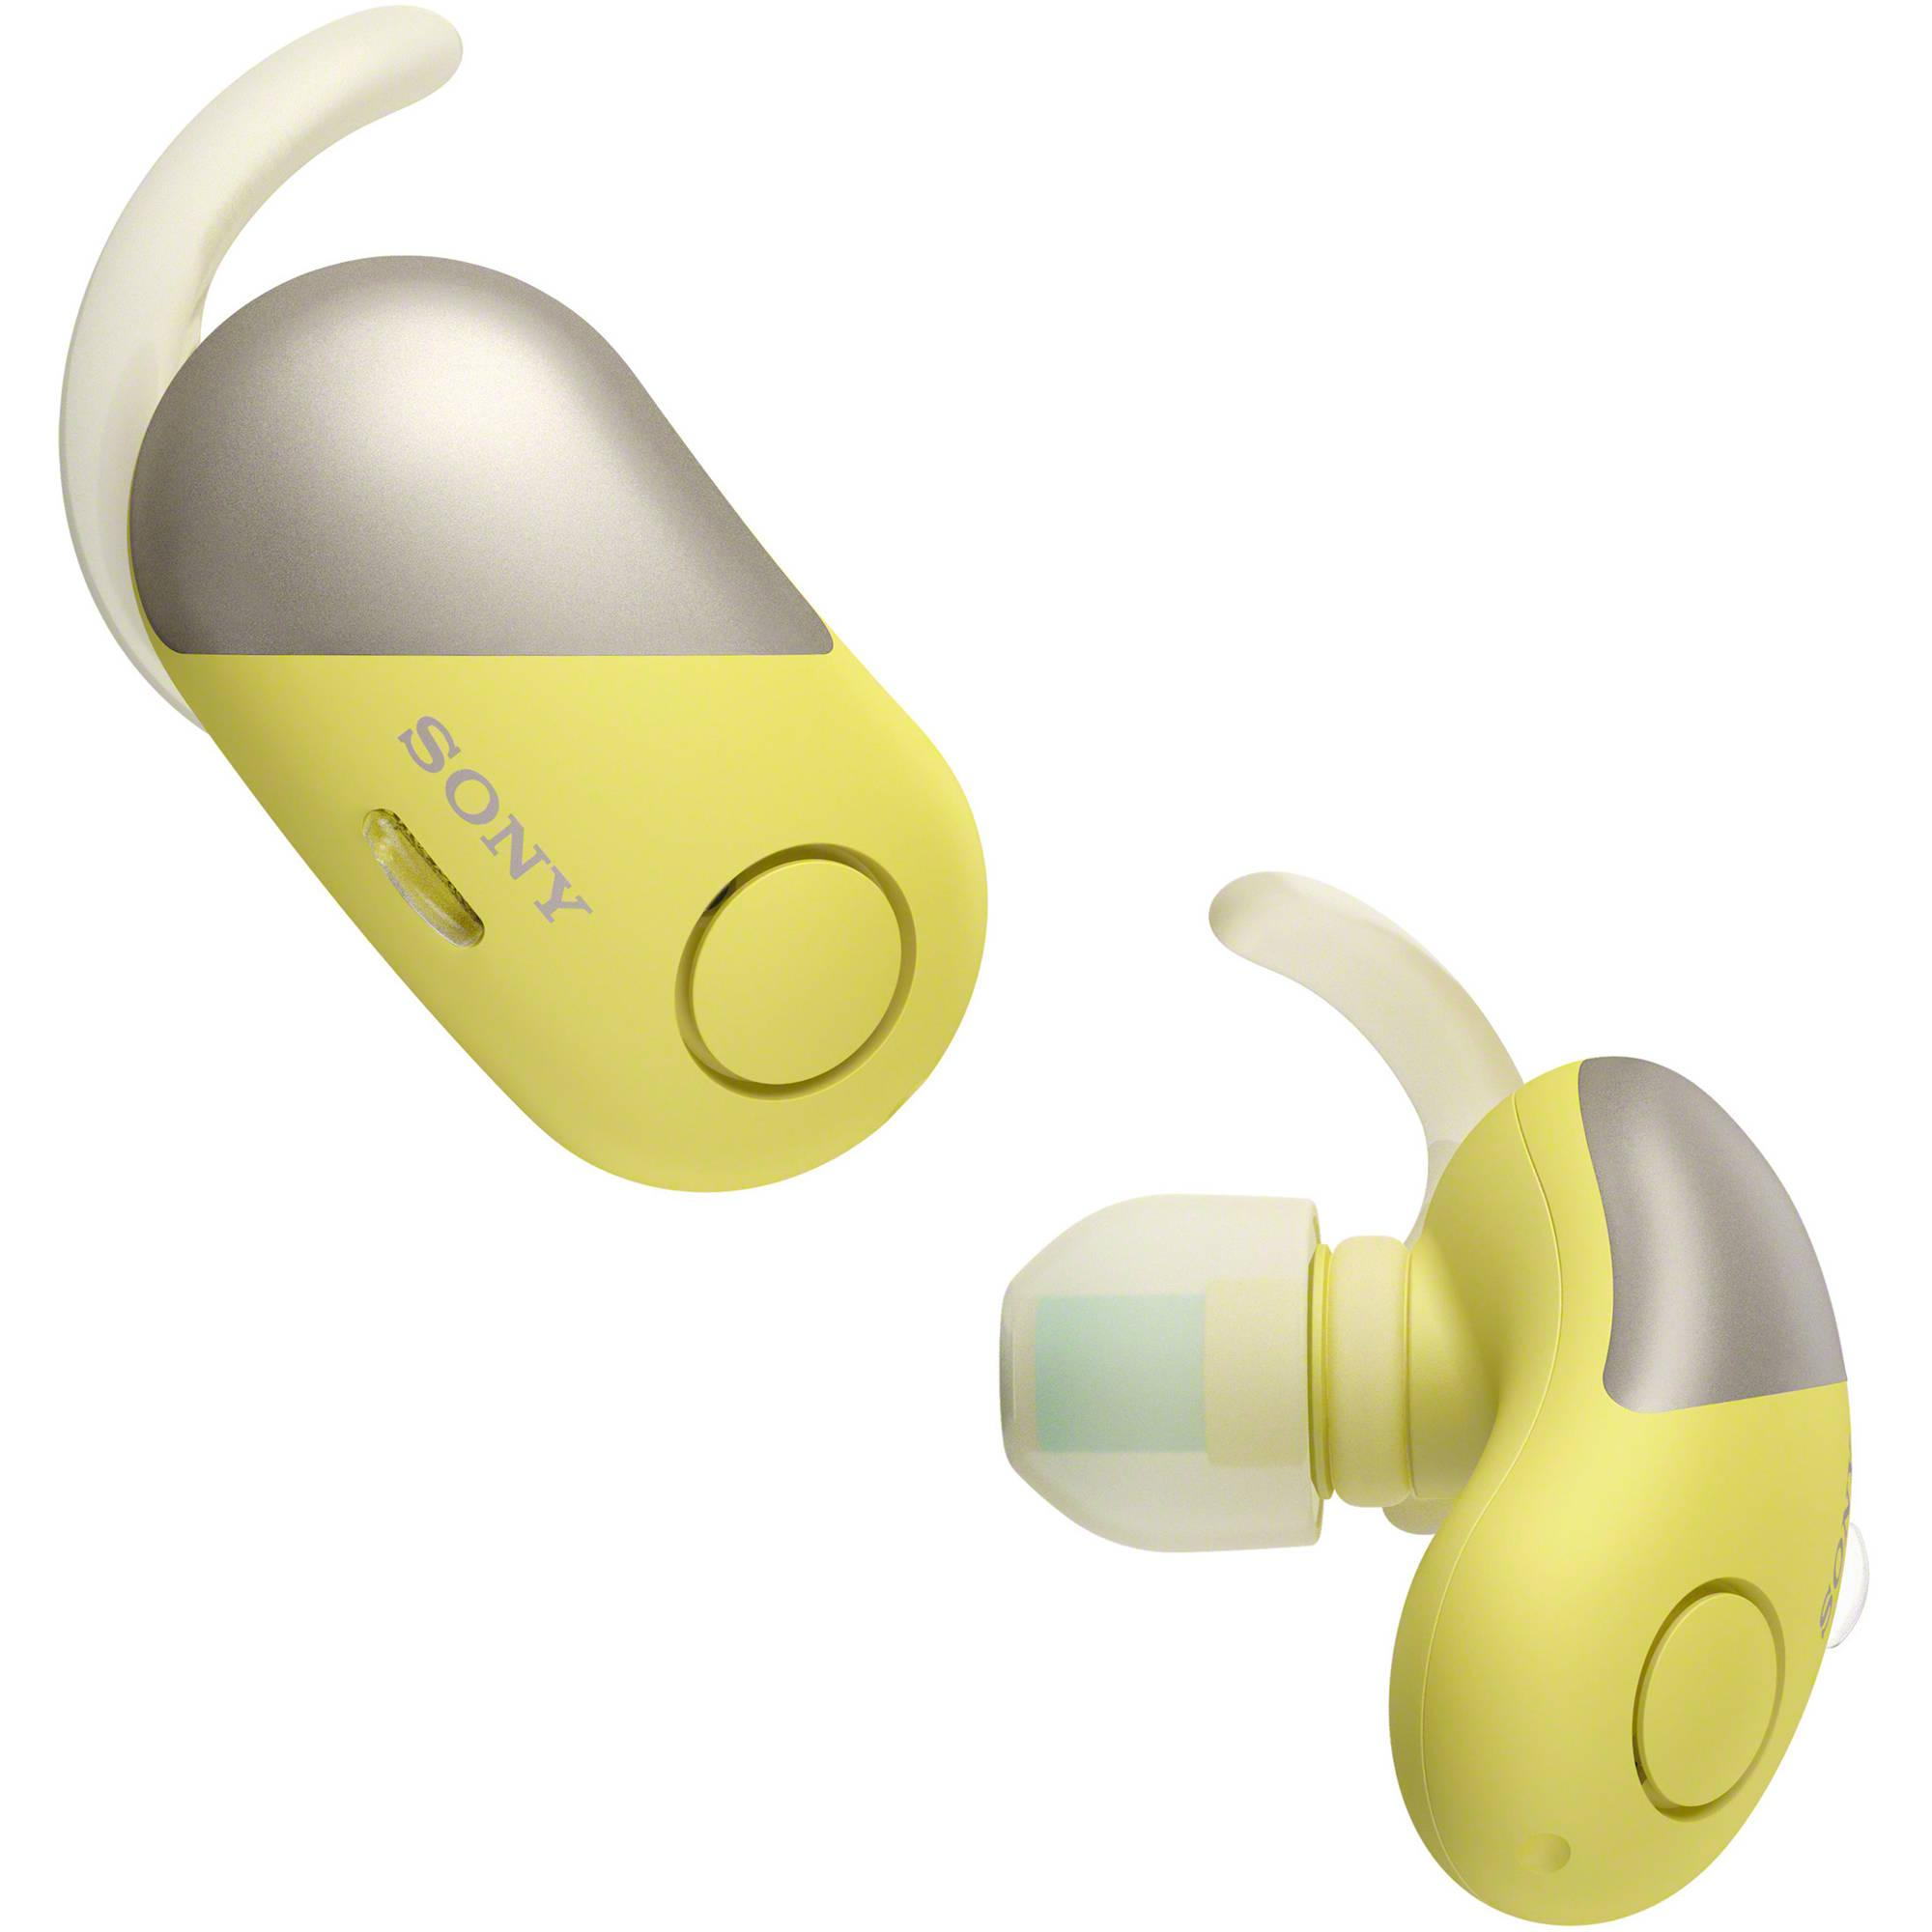 Sony Original WF-SP700N / WF SP700N / WFSP700N / SP700 Yellow Wireless Noise Canceling Sports In-Ear Headphones With Mic - headset warna Kuning garansi resmi 1 tahun Sony Indonesia